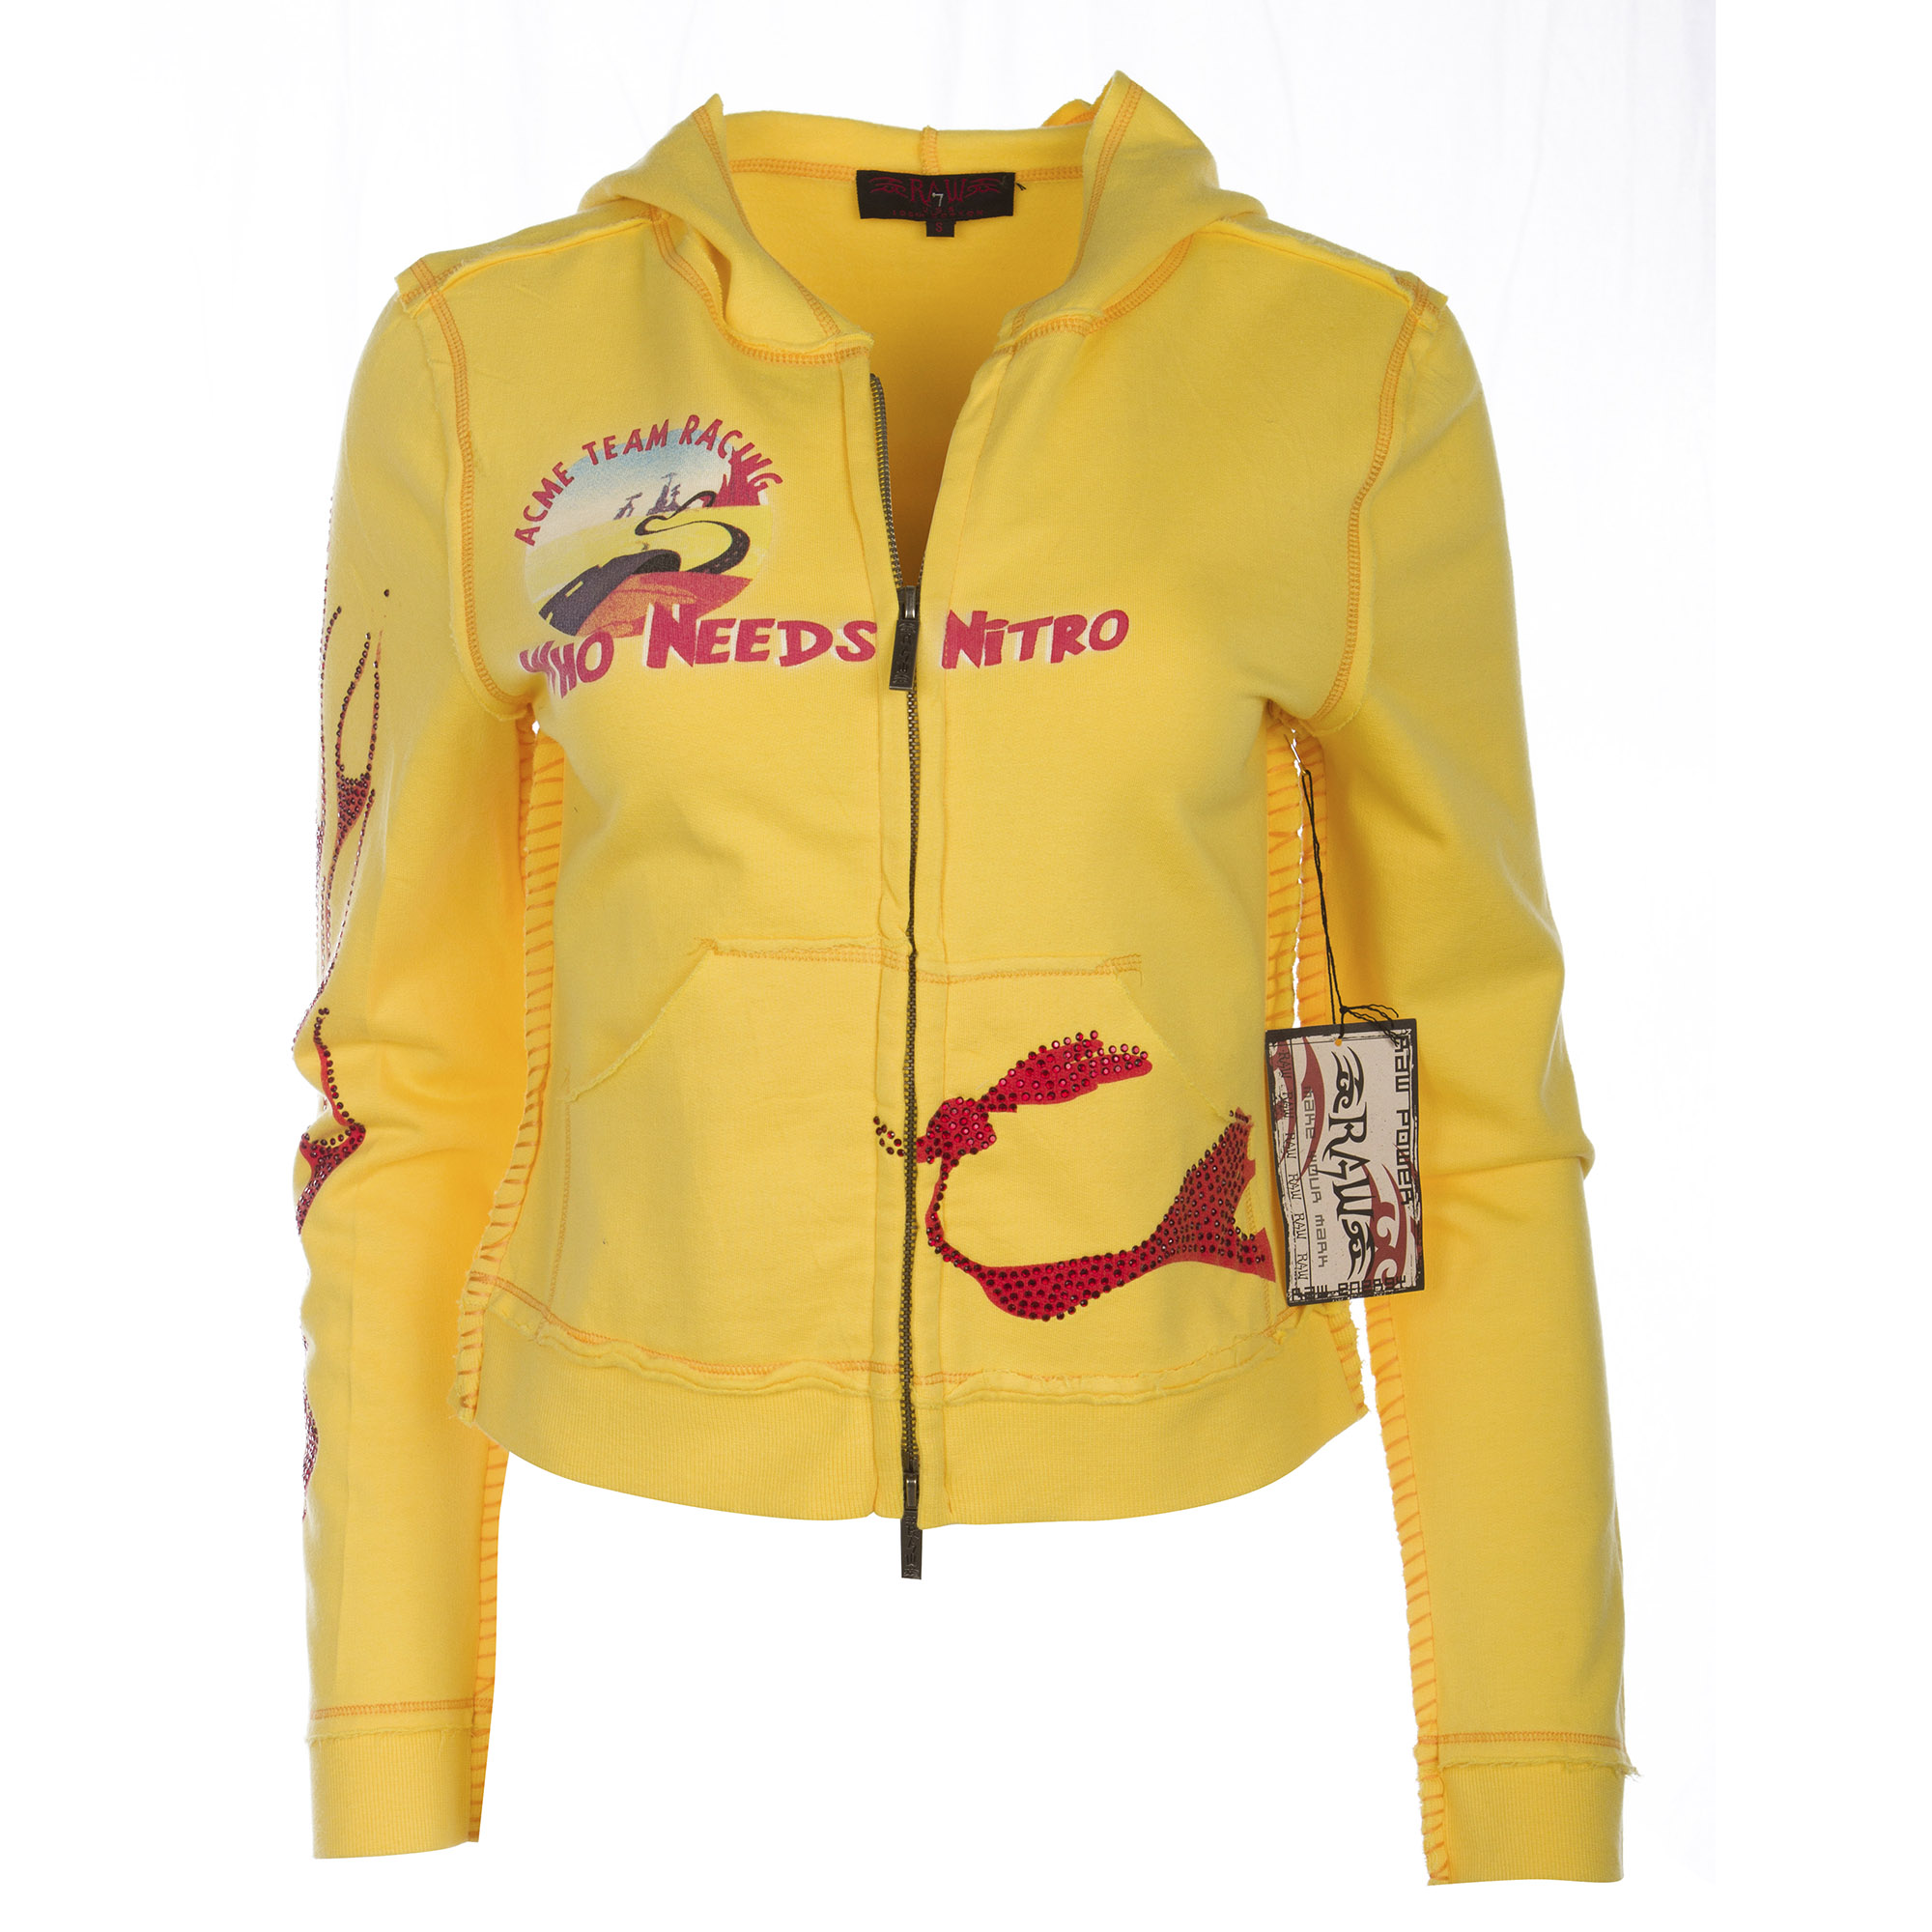 RAW 7 ST86-Wile-Y Looney Tunes Women's Yellow Zip Hoodie Wile E. Coyote and the Road Runner